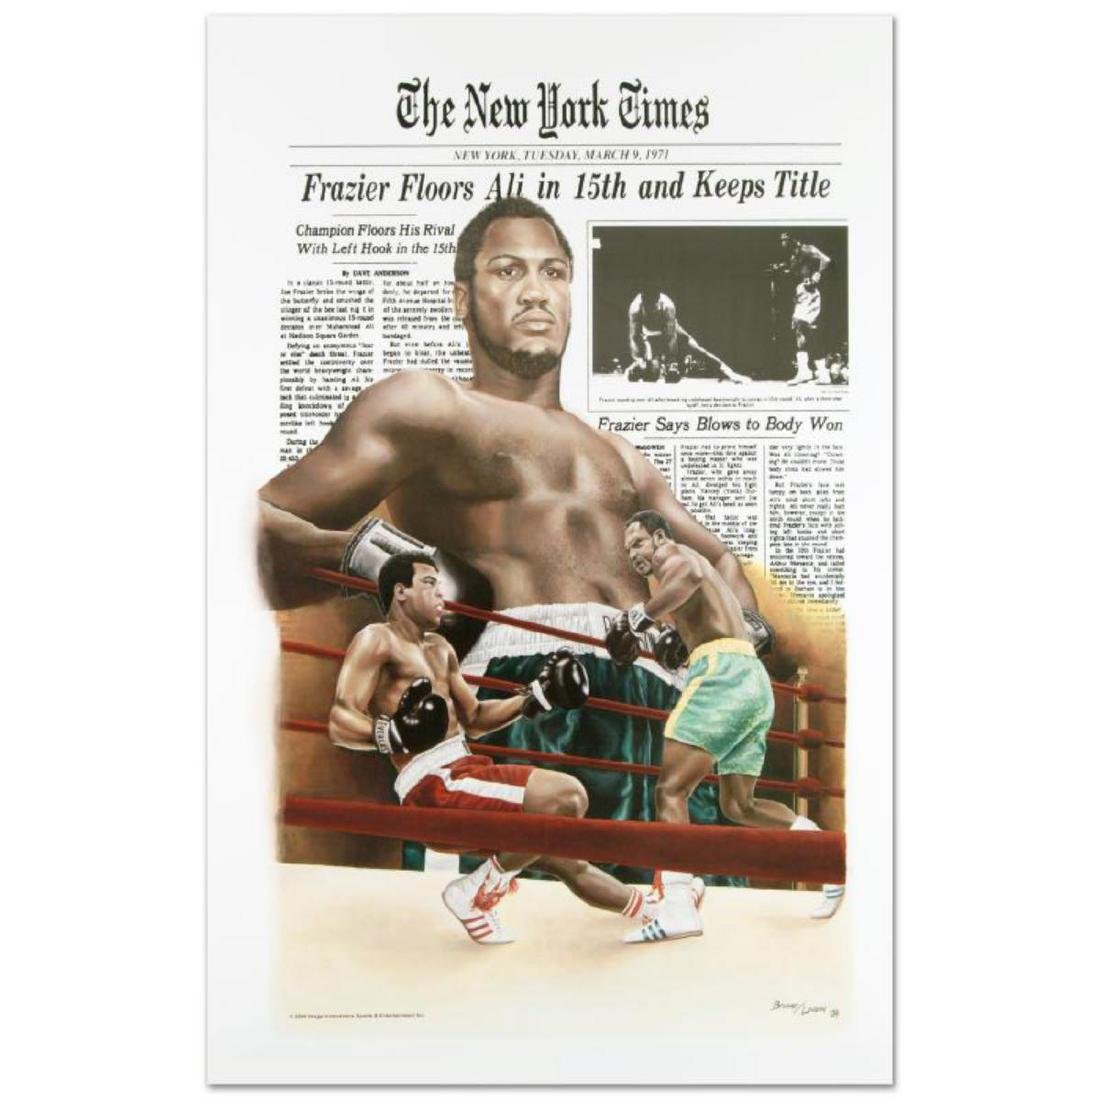 """Frazier Floors Ali"" FINE ART POSTER (26.5"" x 36.5"") of"